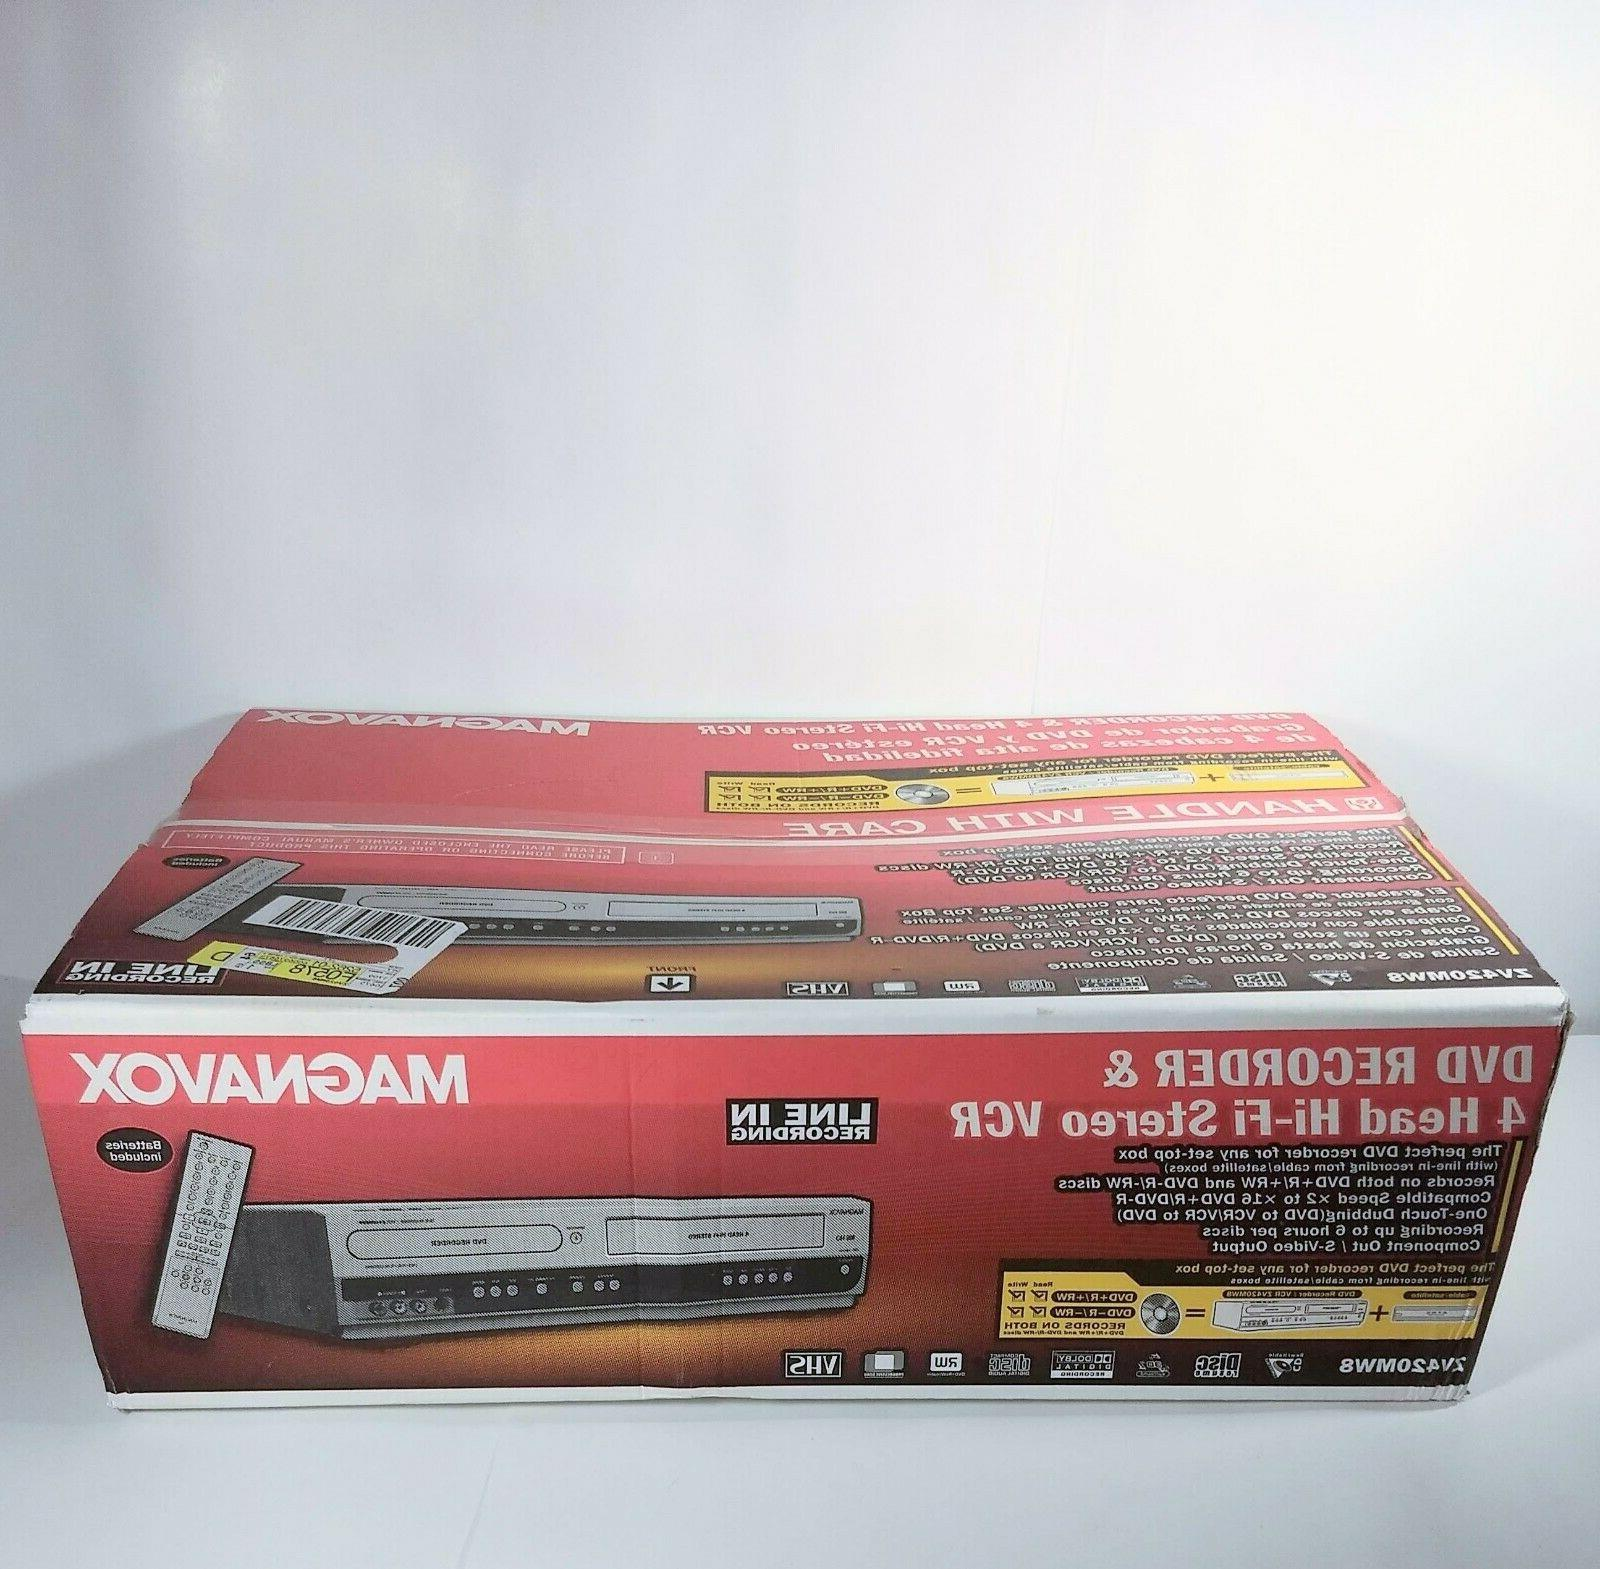 new zv420mw8 dvd recorder player vcr combo